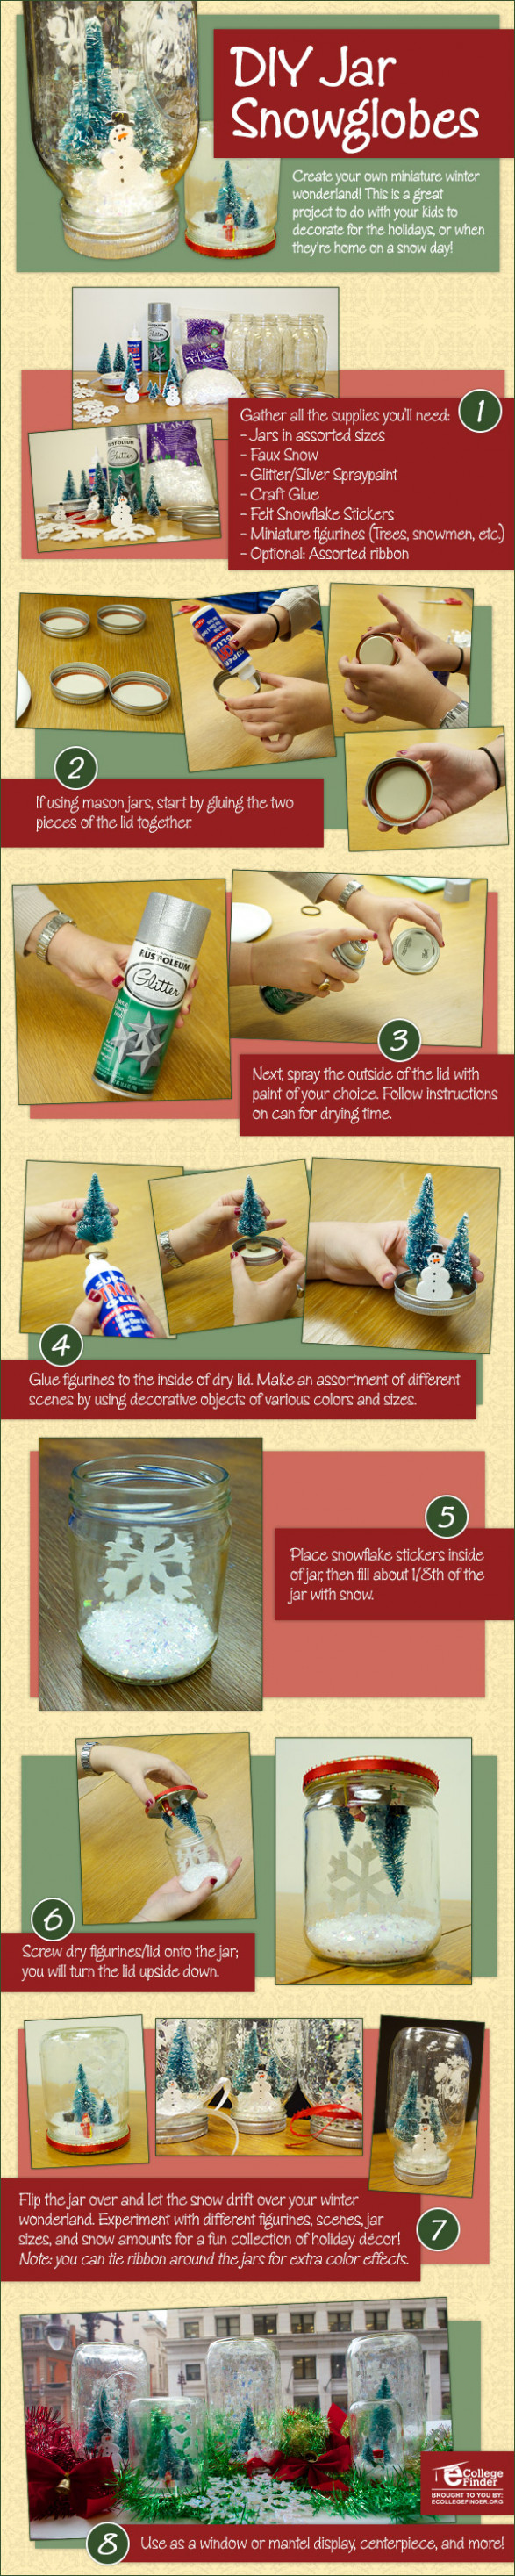 How to Create DIY Snowglobes